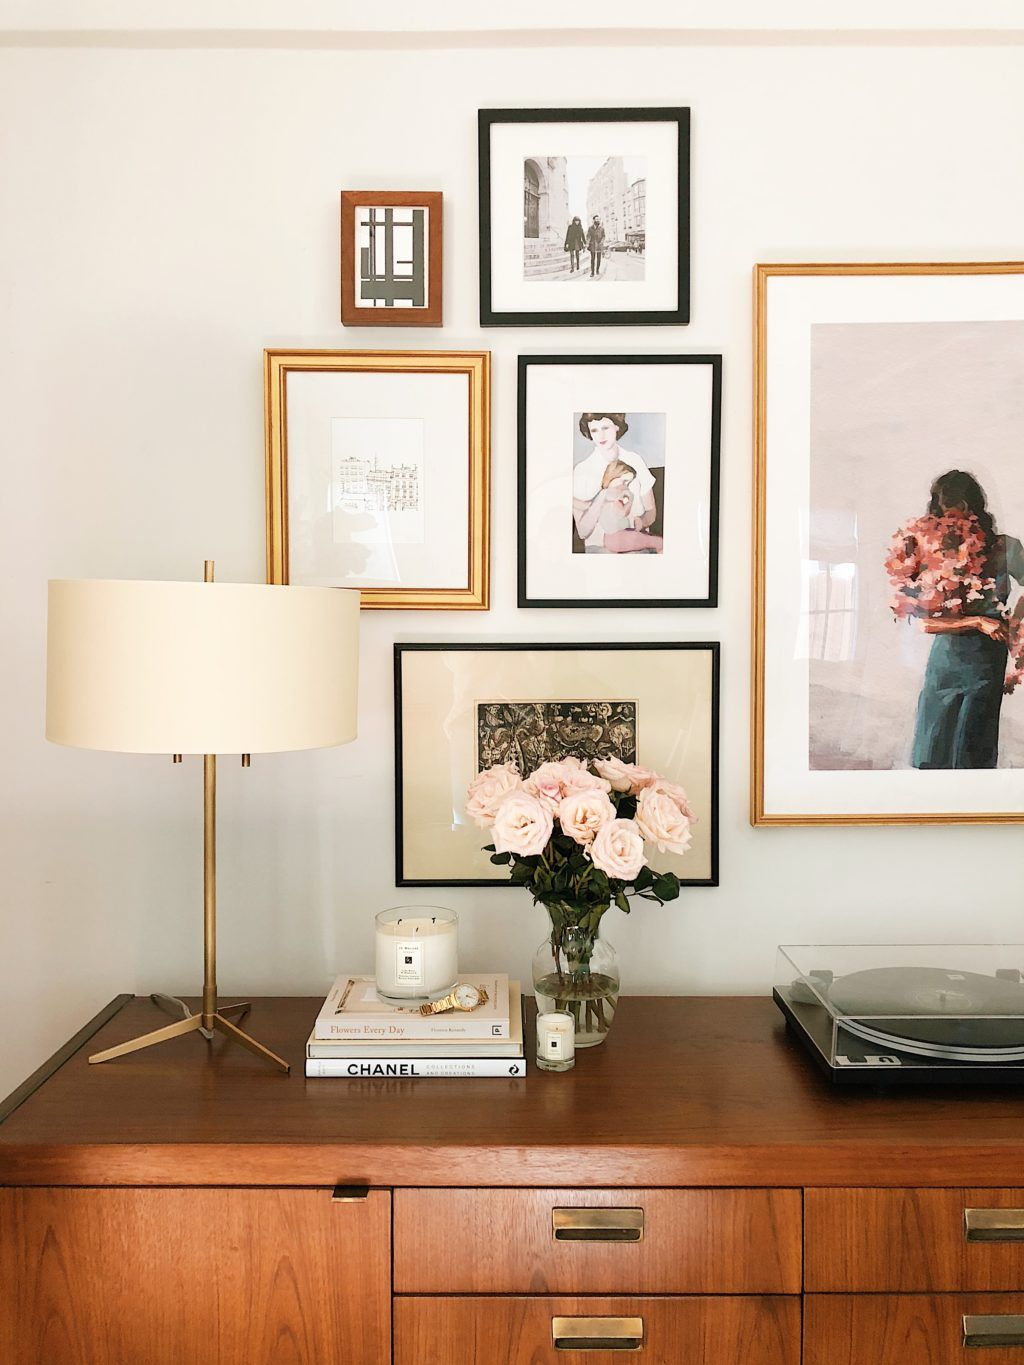 Home interior frames gallery wall and credenza styling ideas  apartment in